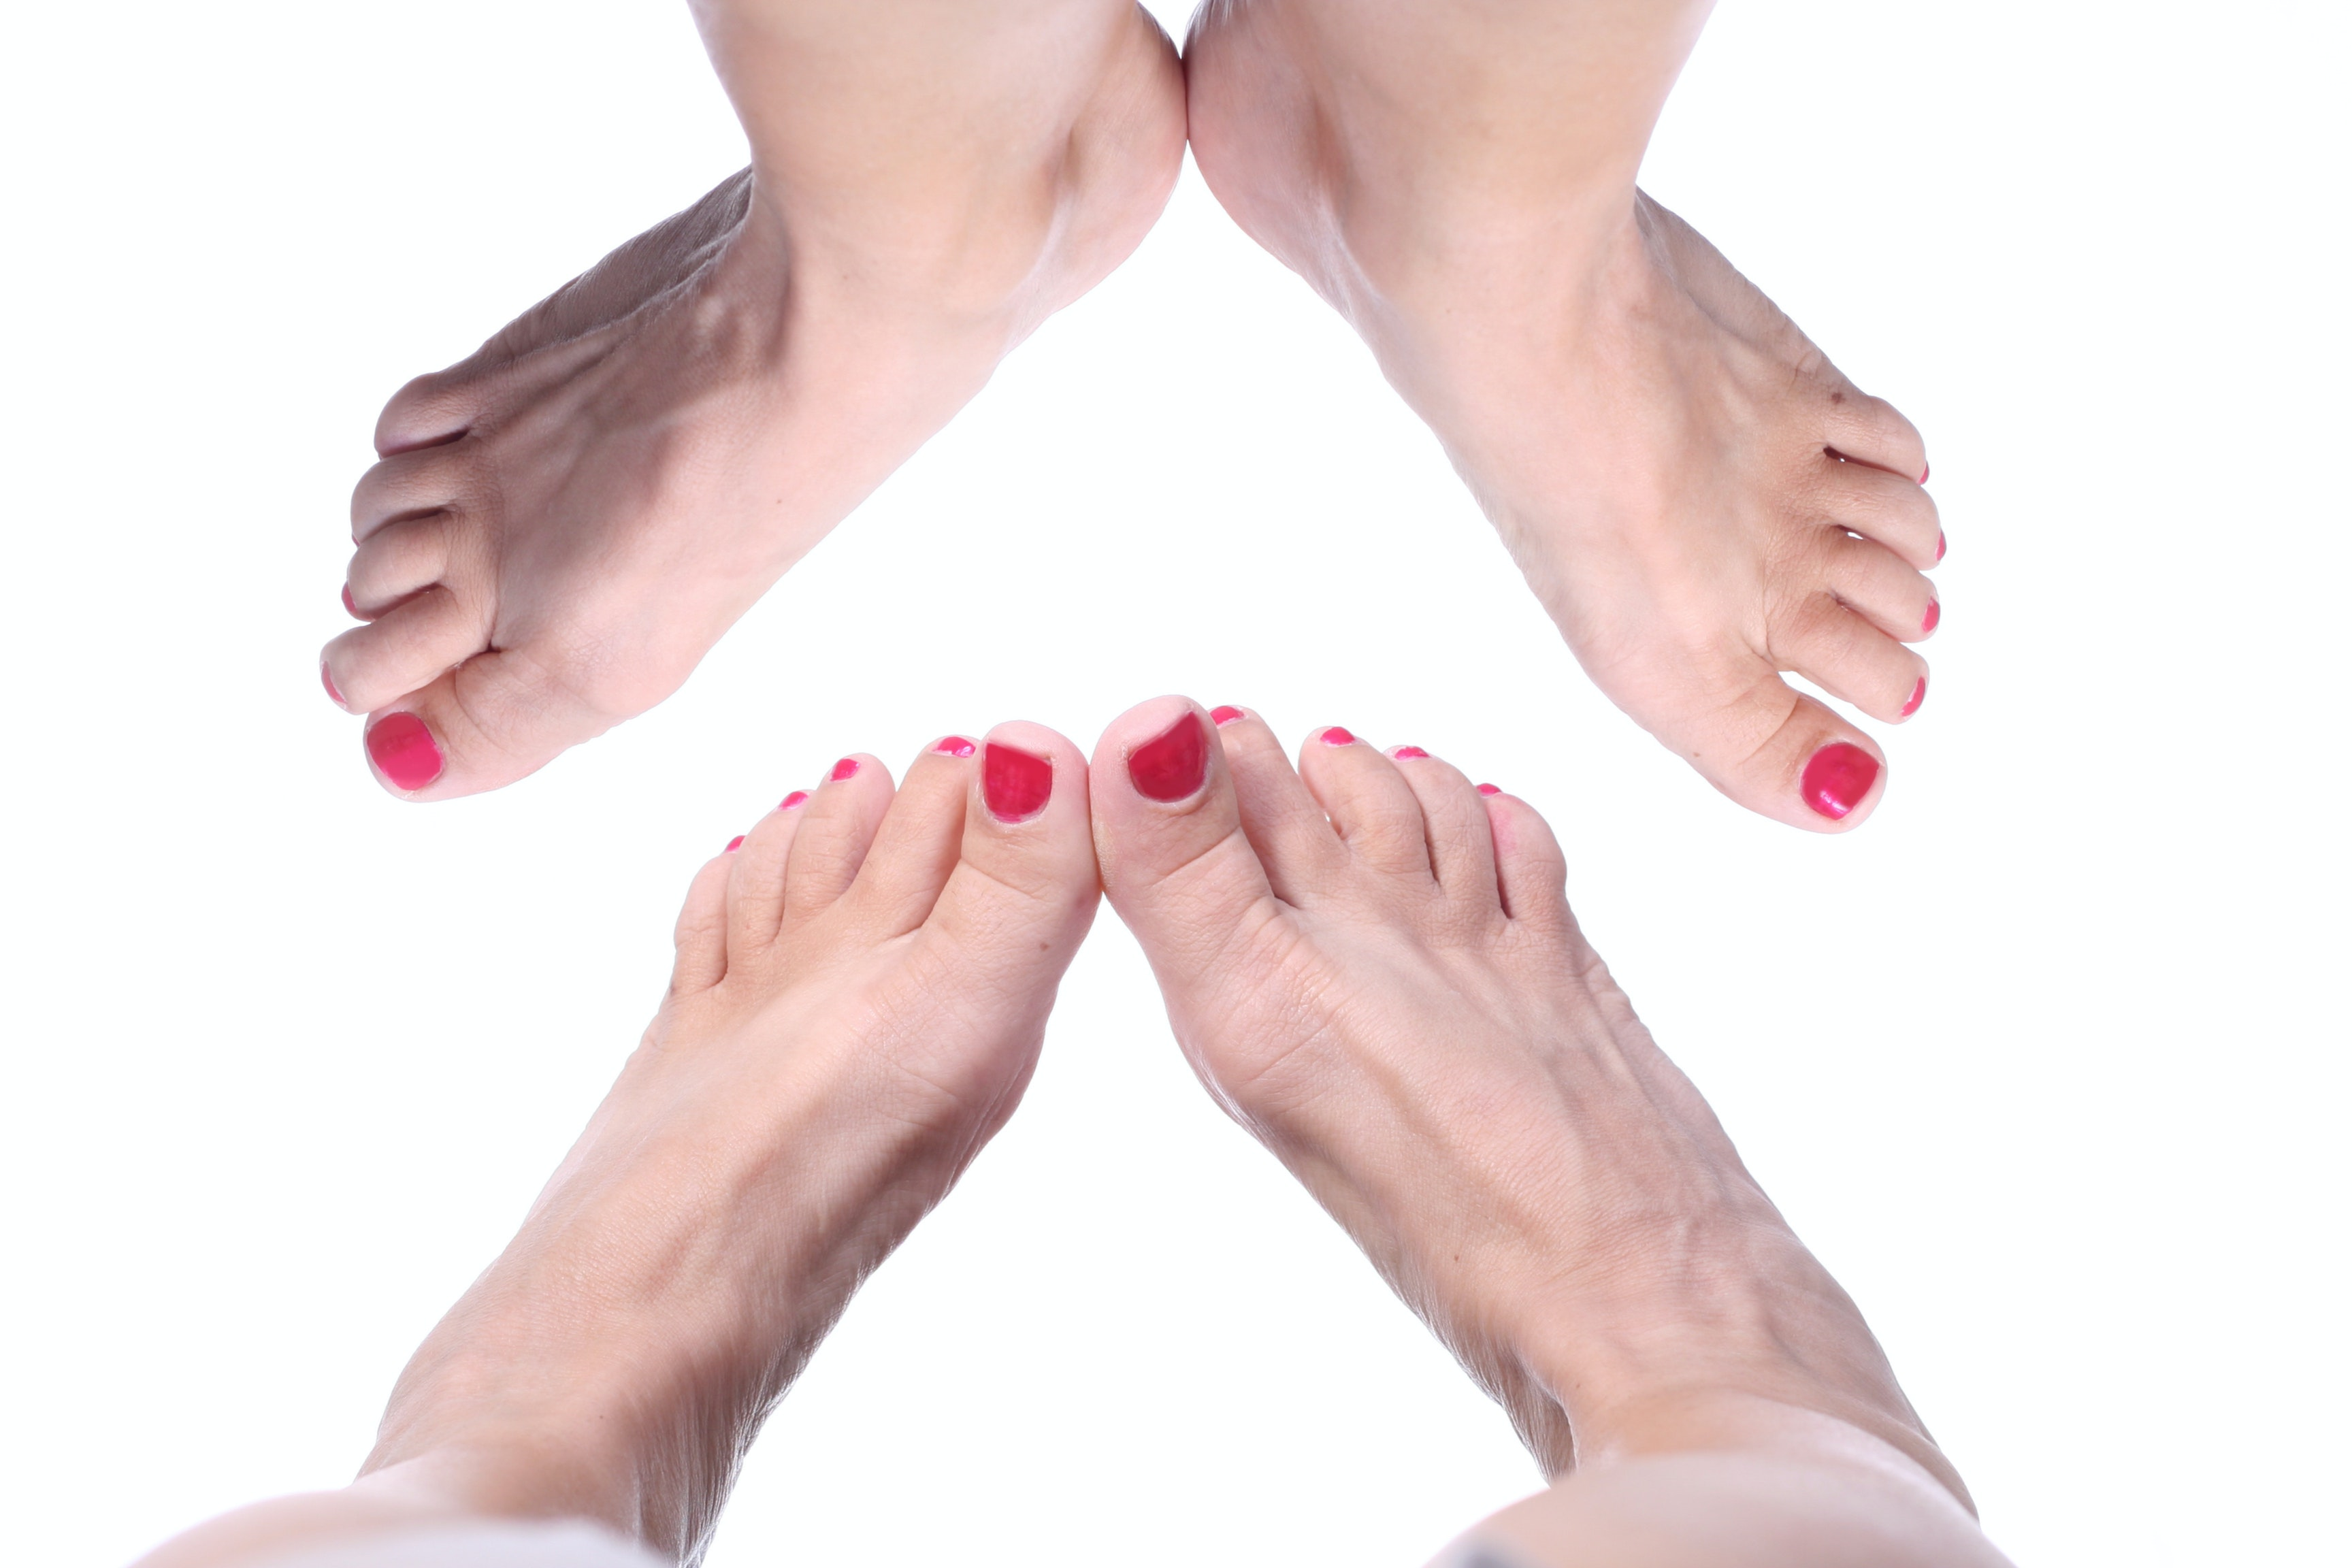 Why are your toes numb